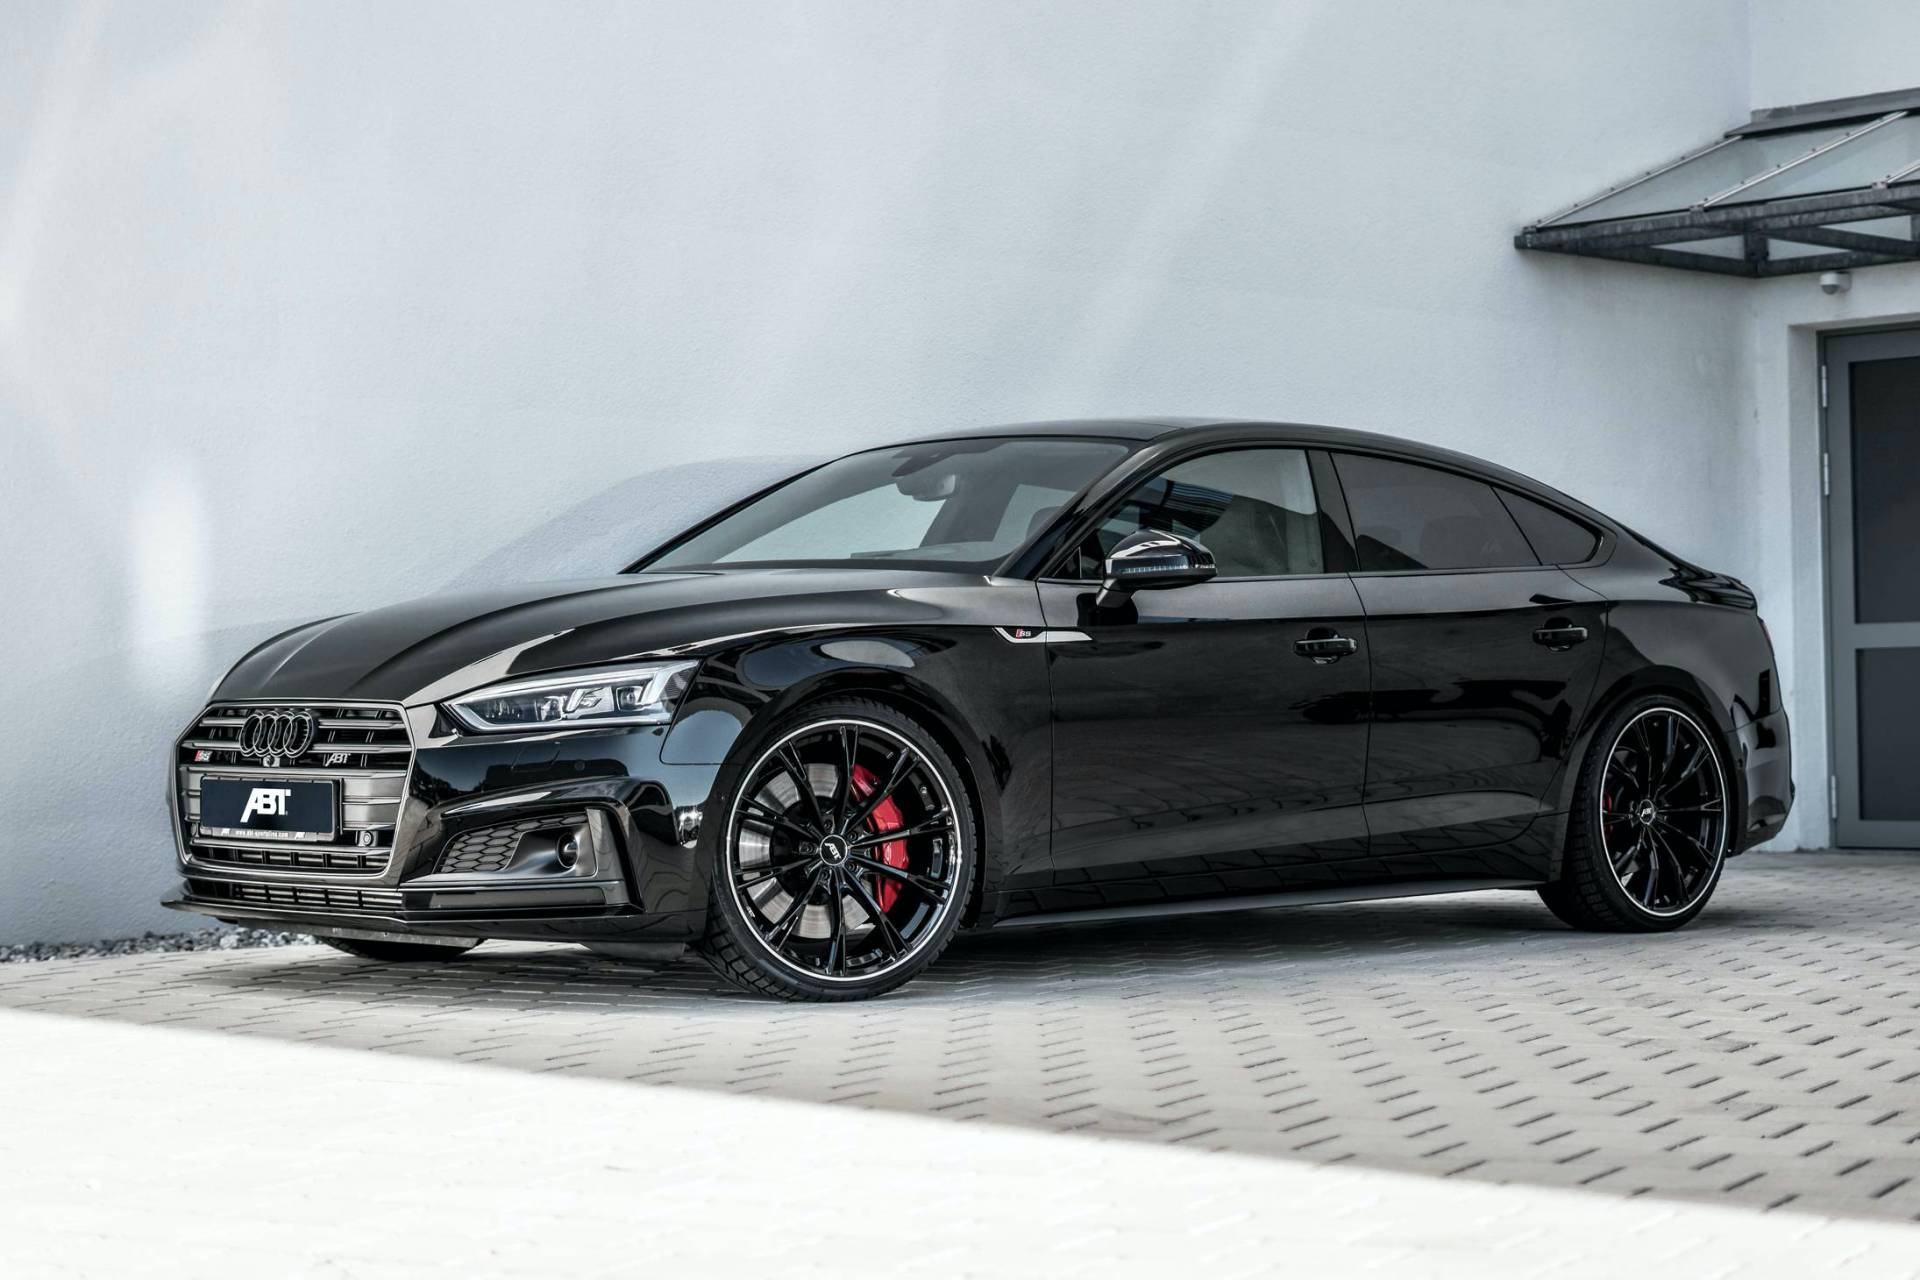 Abt Gives Europe S 2020 Audi S5 Sportback A Diesel Boost To 379 Hp Carscoops